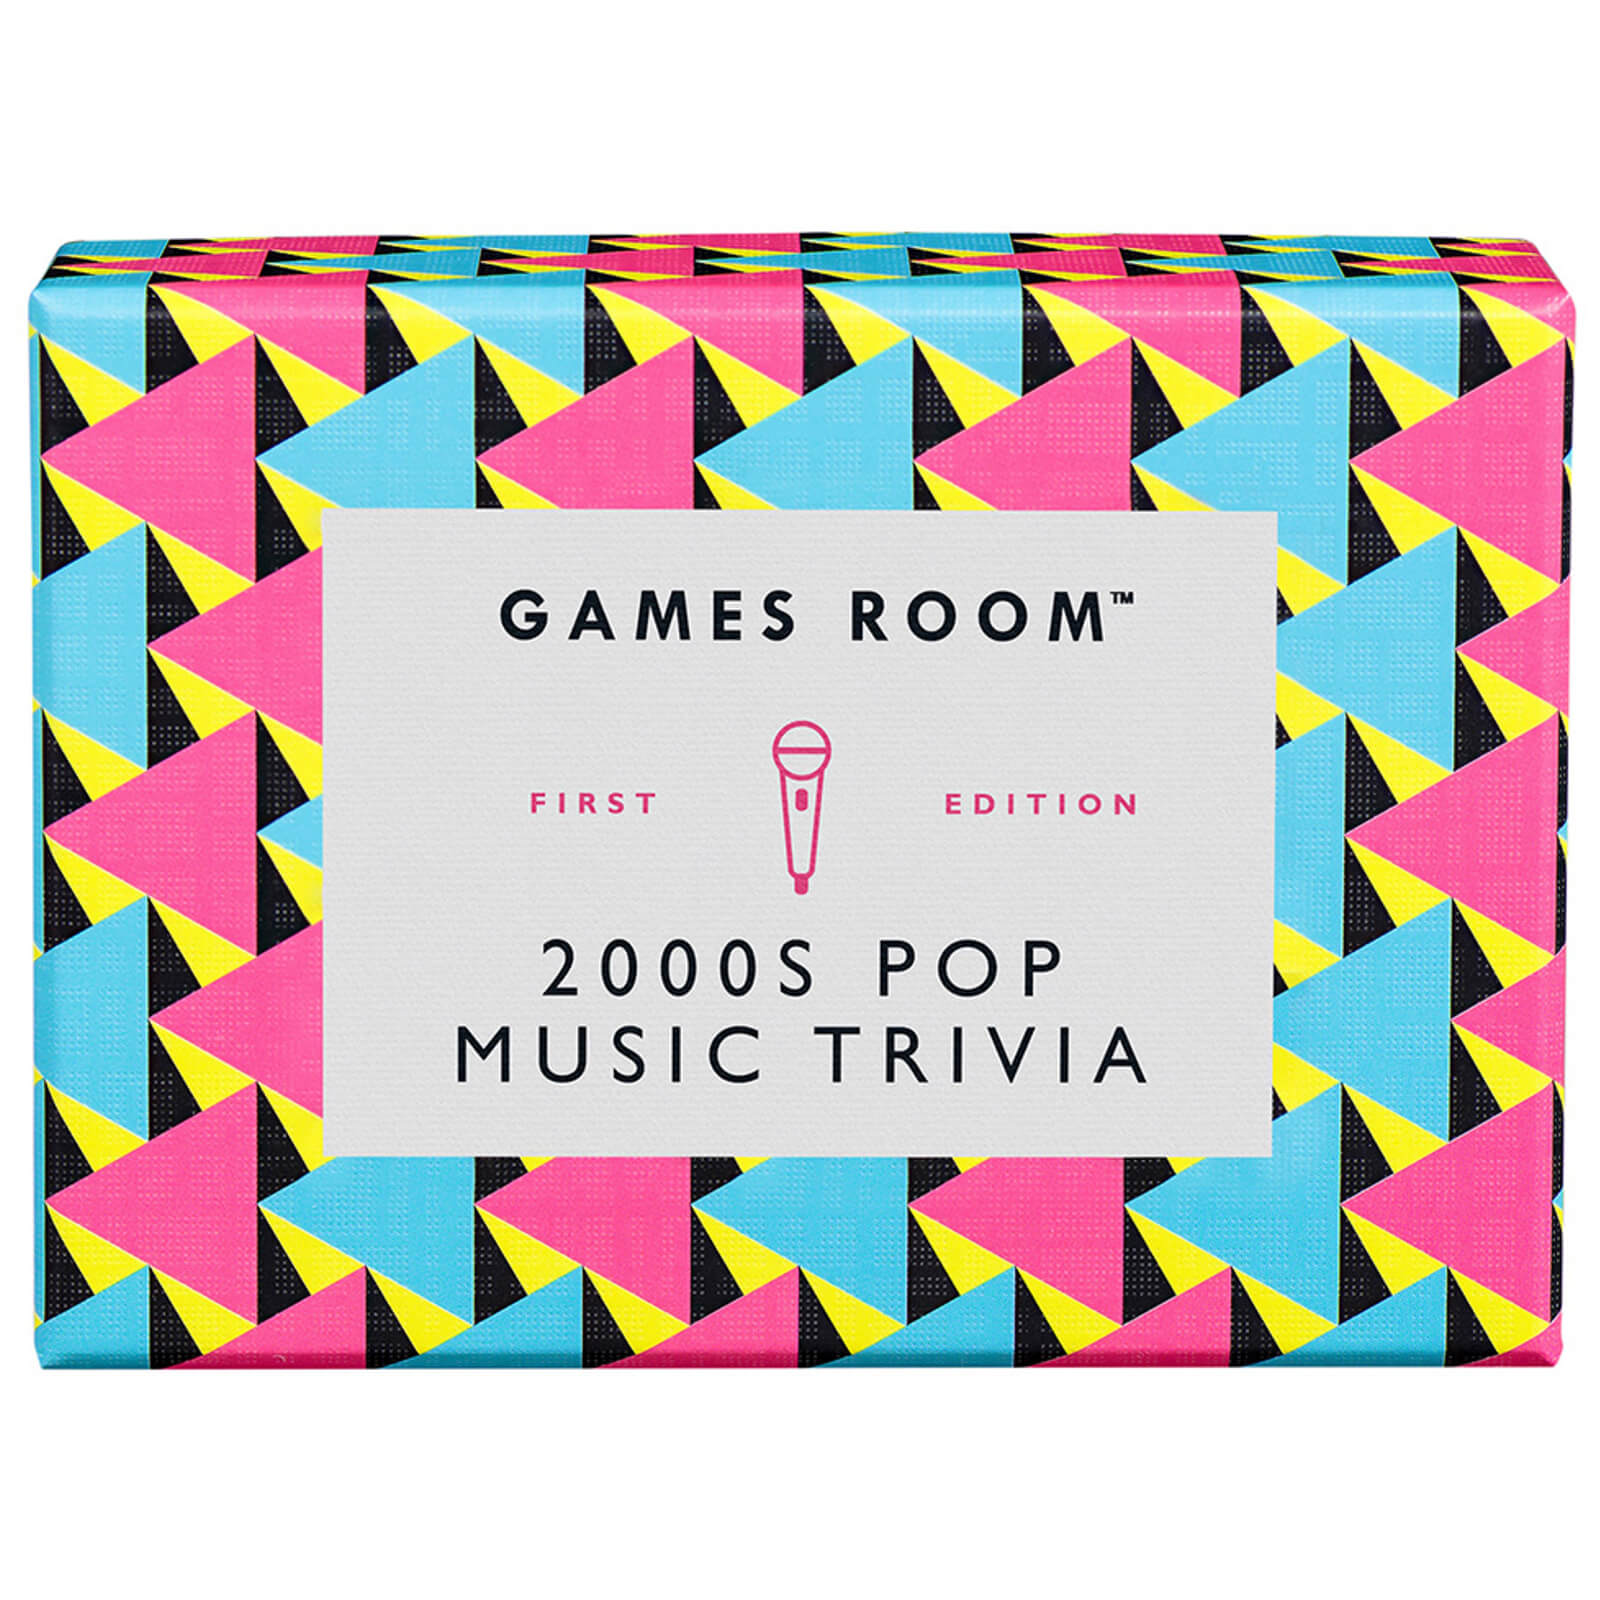 Image of The Games Room 2000's Pop Music Trivia Cards